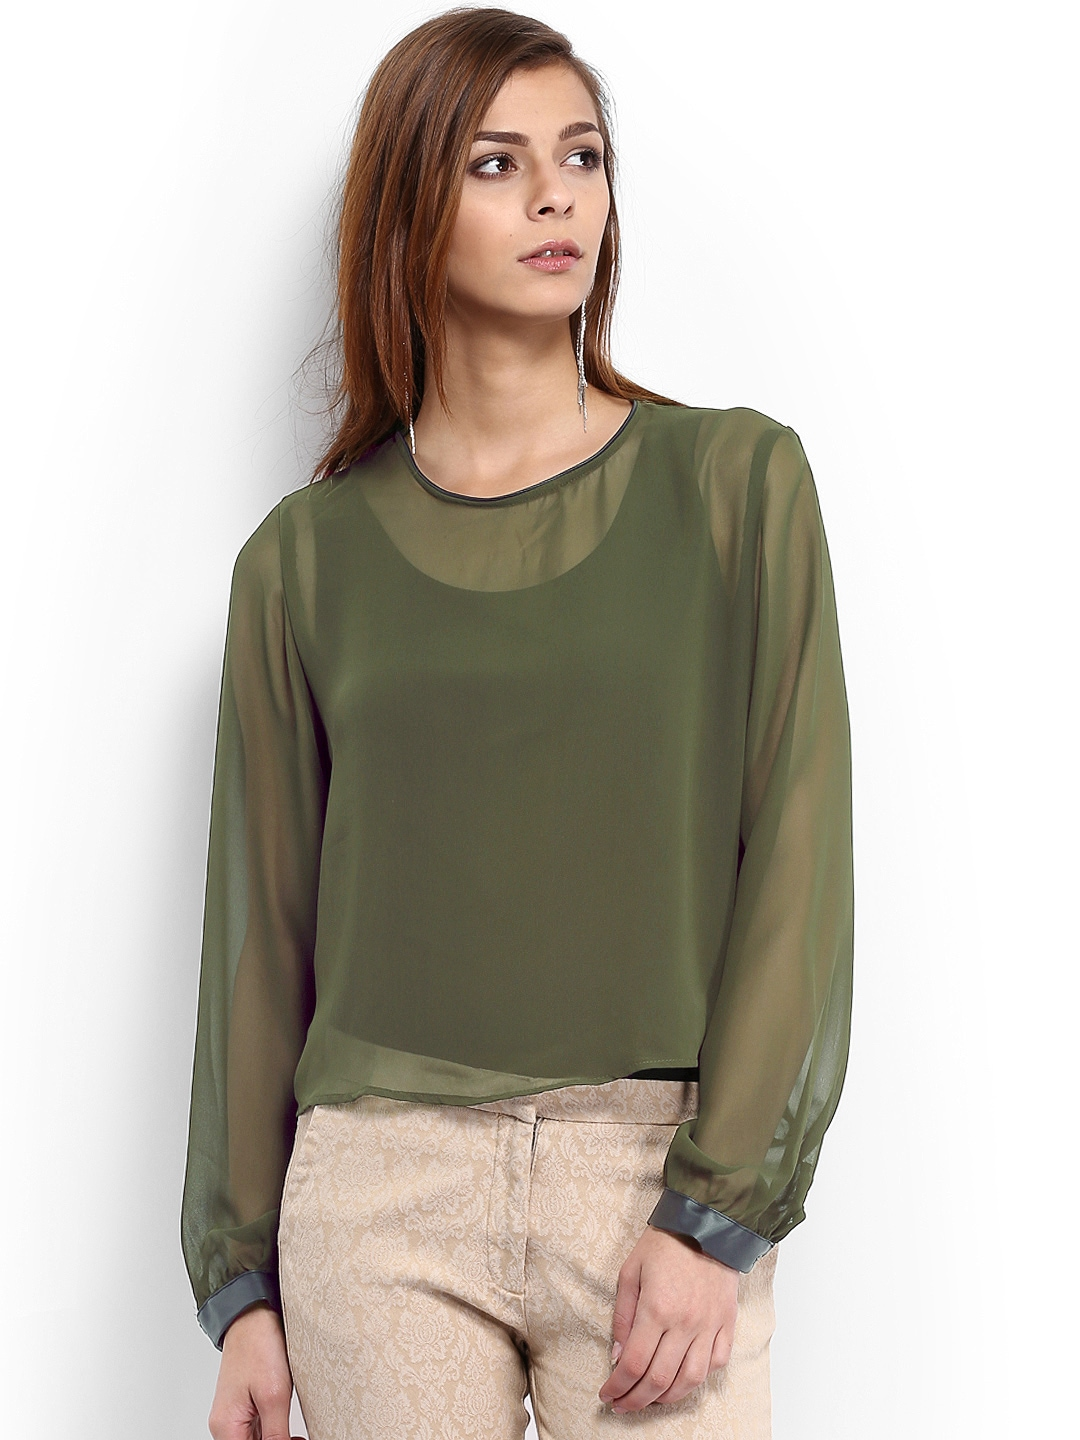 Myntra Tokyo Talkies Women Olive Green Sheer Crop Top